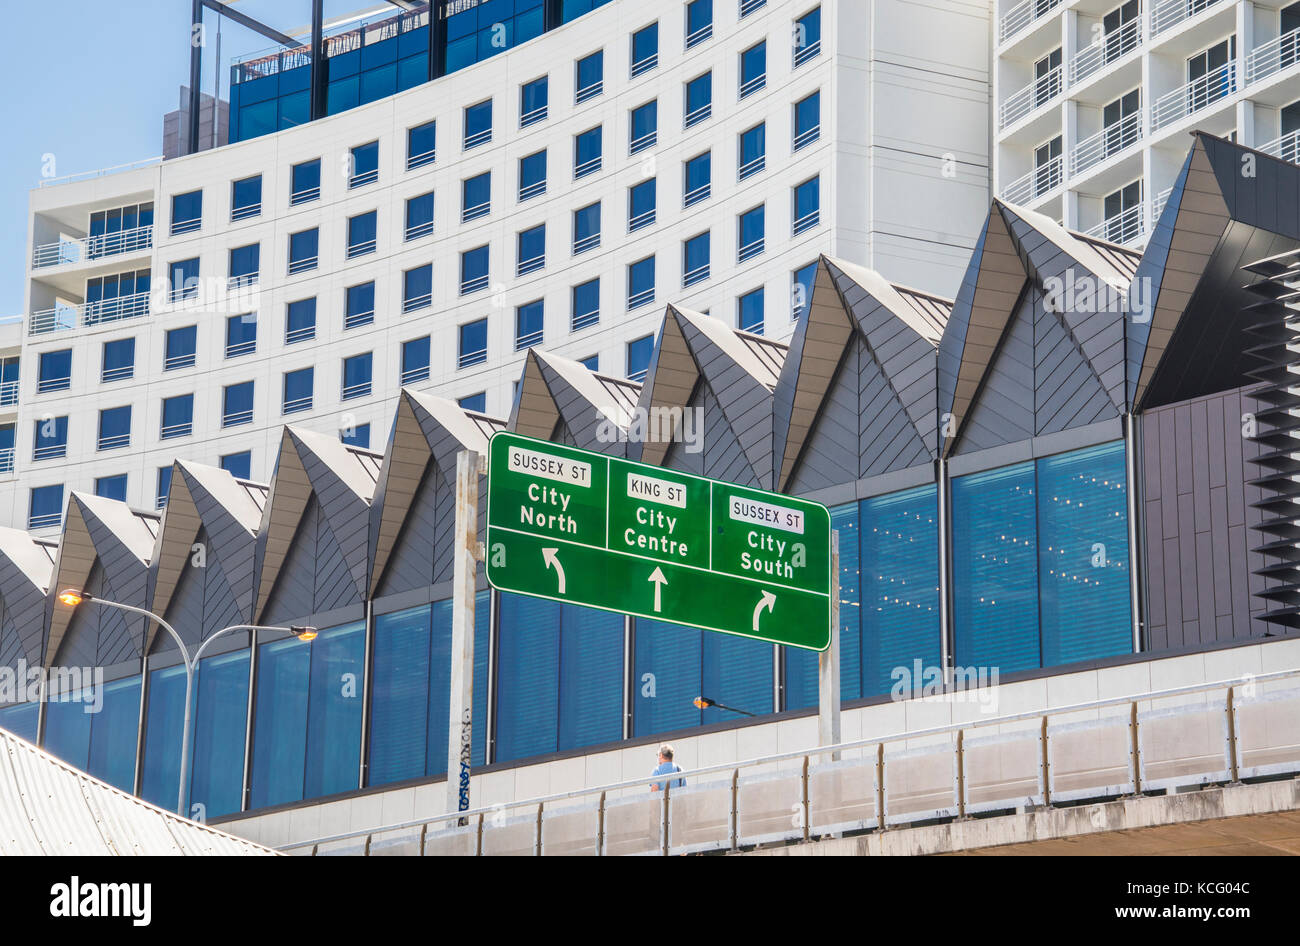 Australia, New South Wales, Sydney, Darling Harbour, condensed view of the Four Points Darling Harbour Hotel - Stock Image